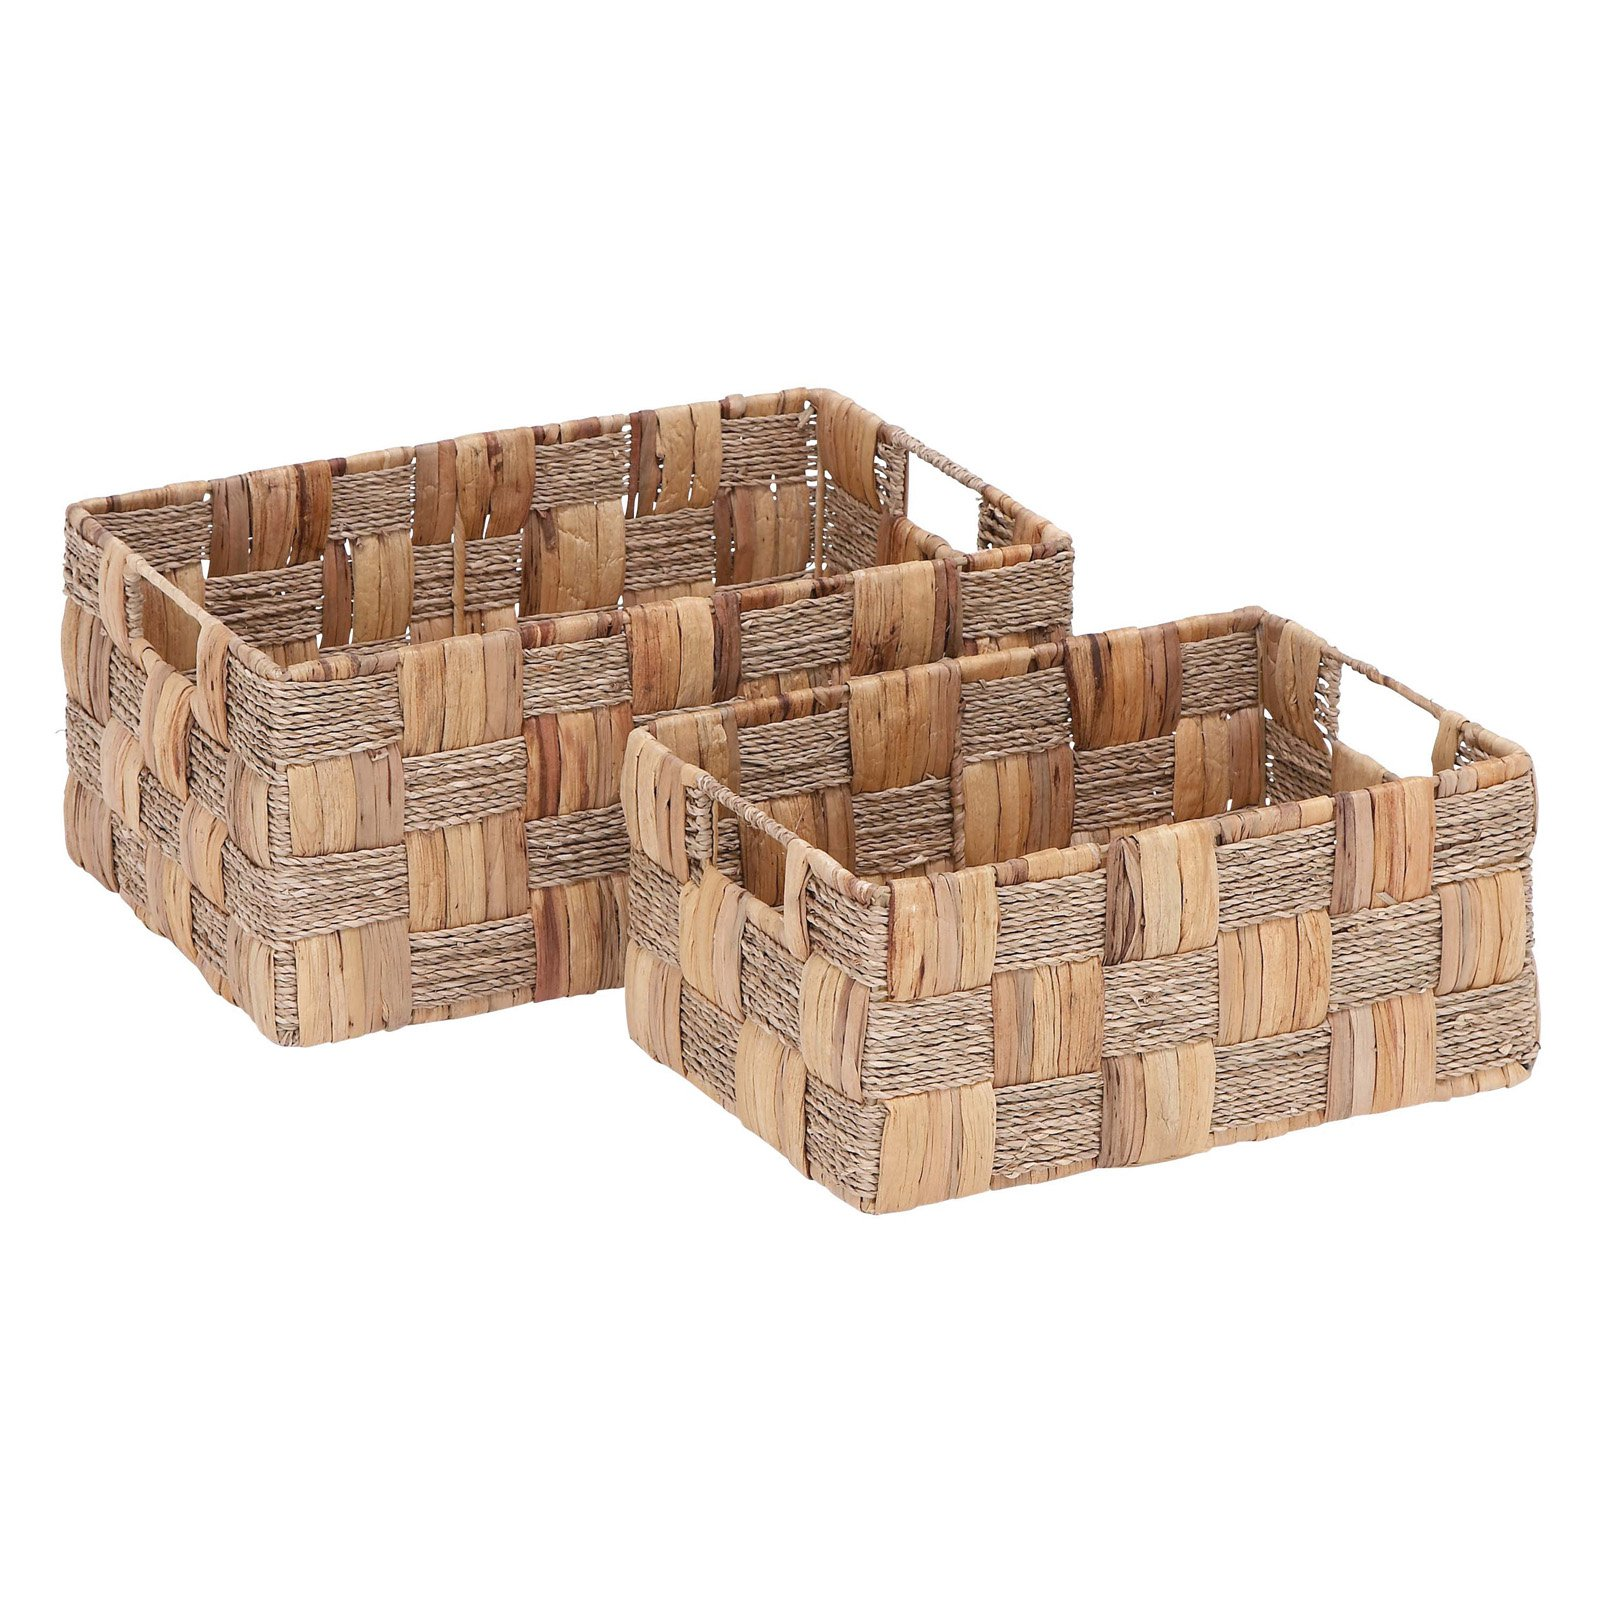 Woodland Imports Wicker Baskets - Set of 2